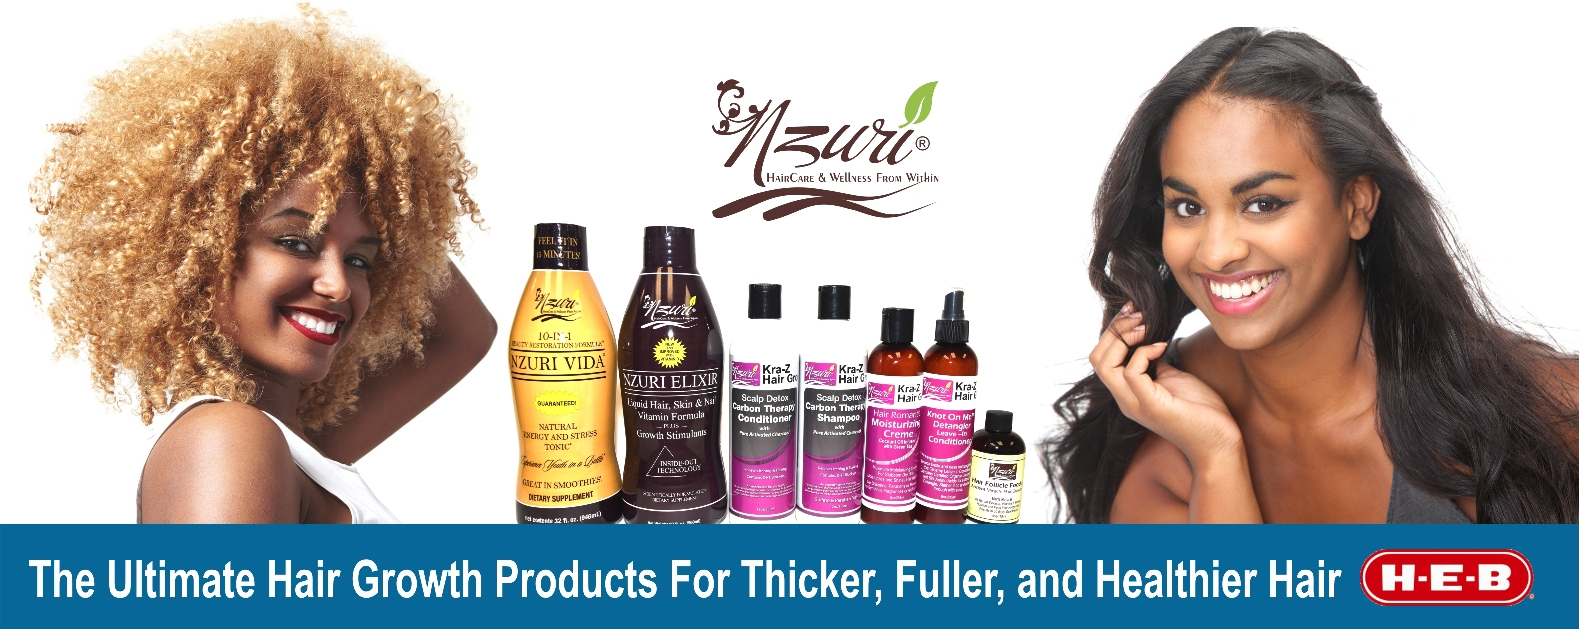 The Ultimate Hair Grwoth Products for Healthier Hair